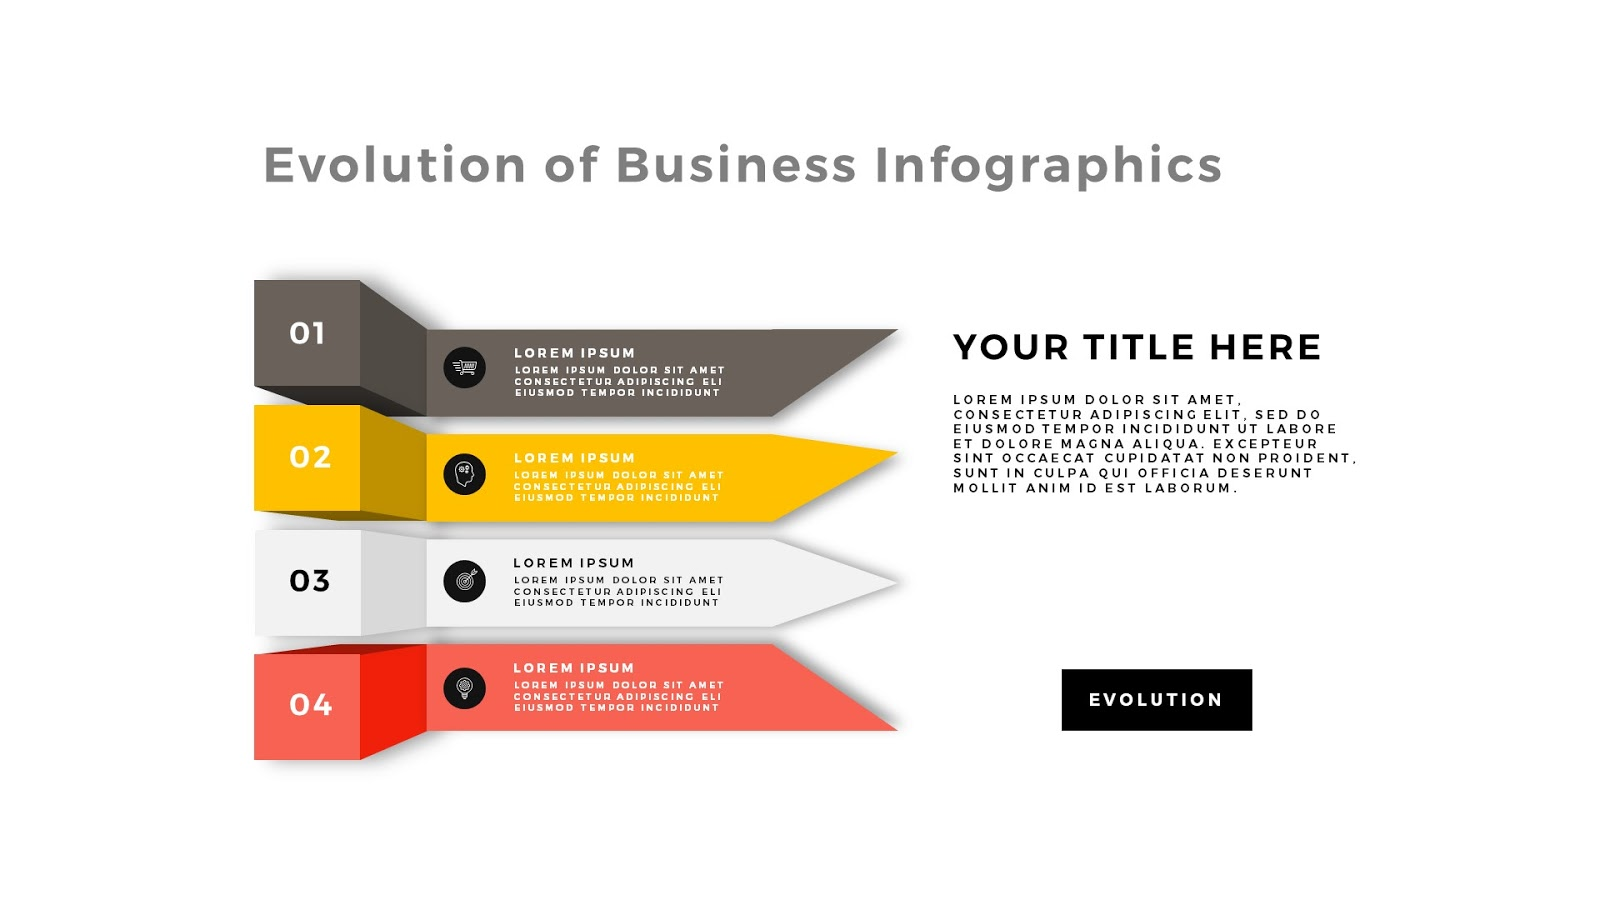 Evolution of business infographic powerpoint template infographicon evolution of business infographic free powerpoint template slide 1 toneelgroepblik Image collections